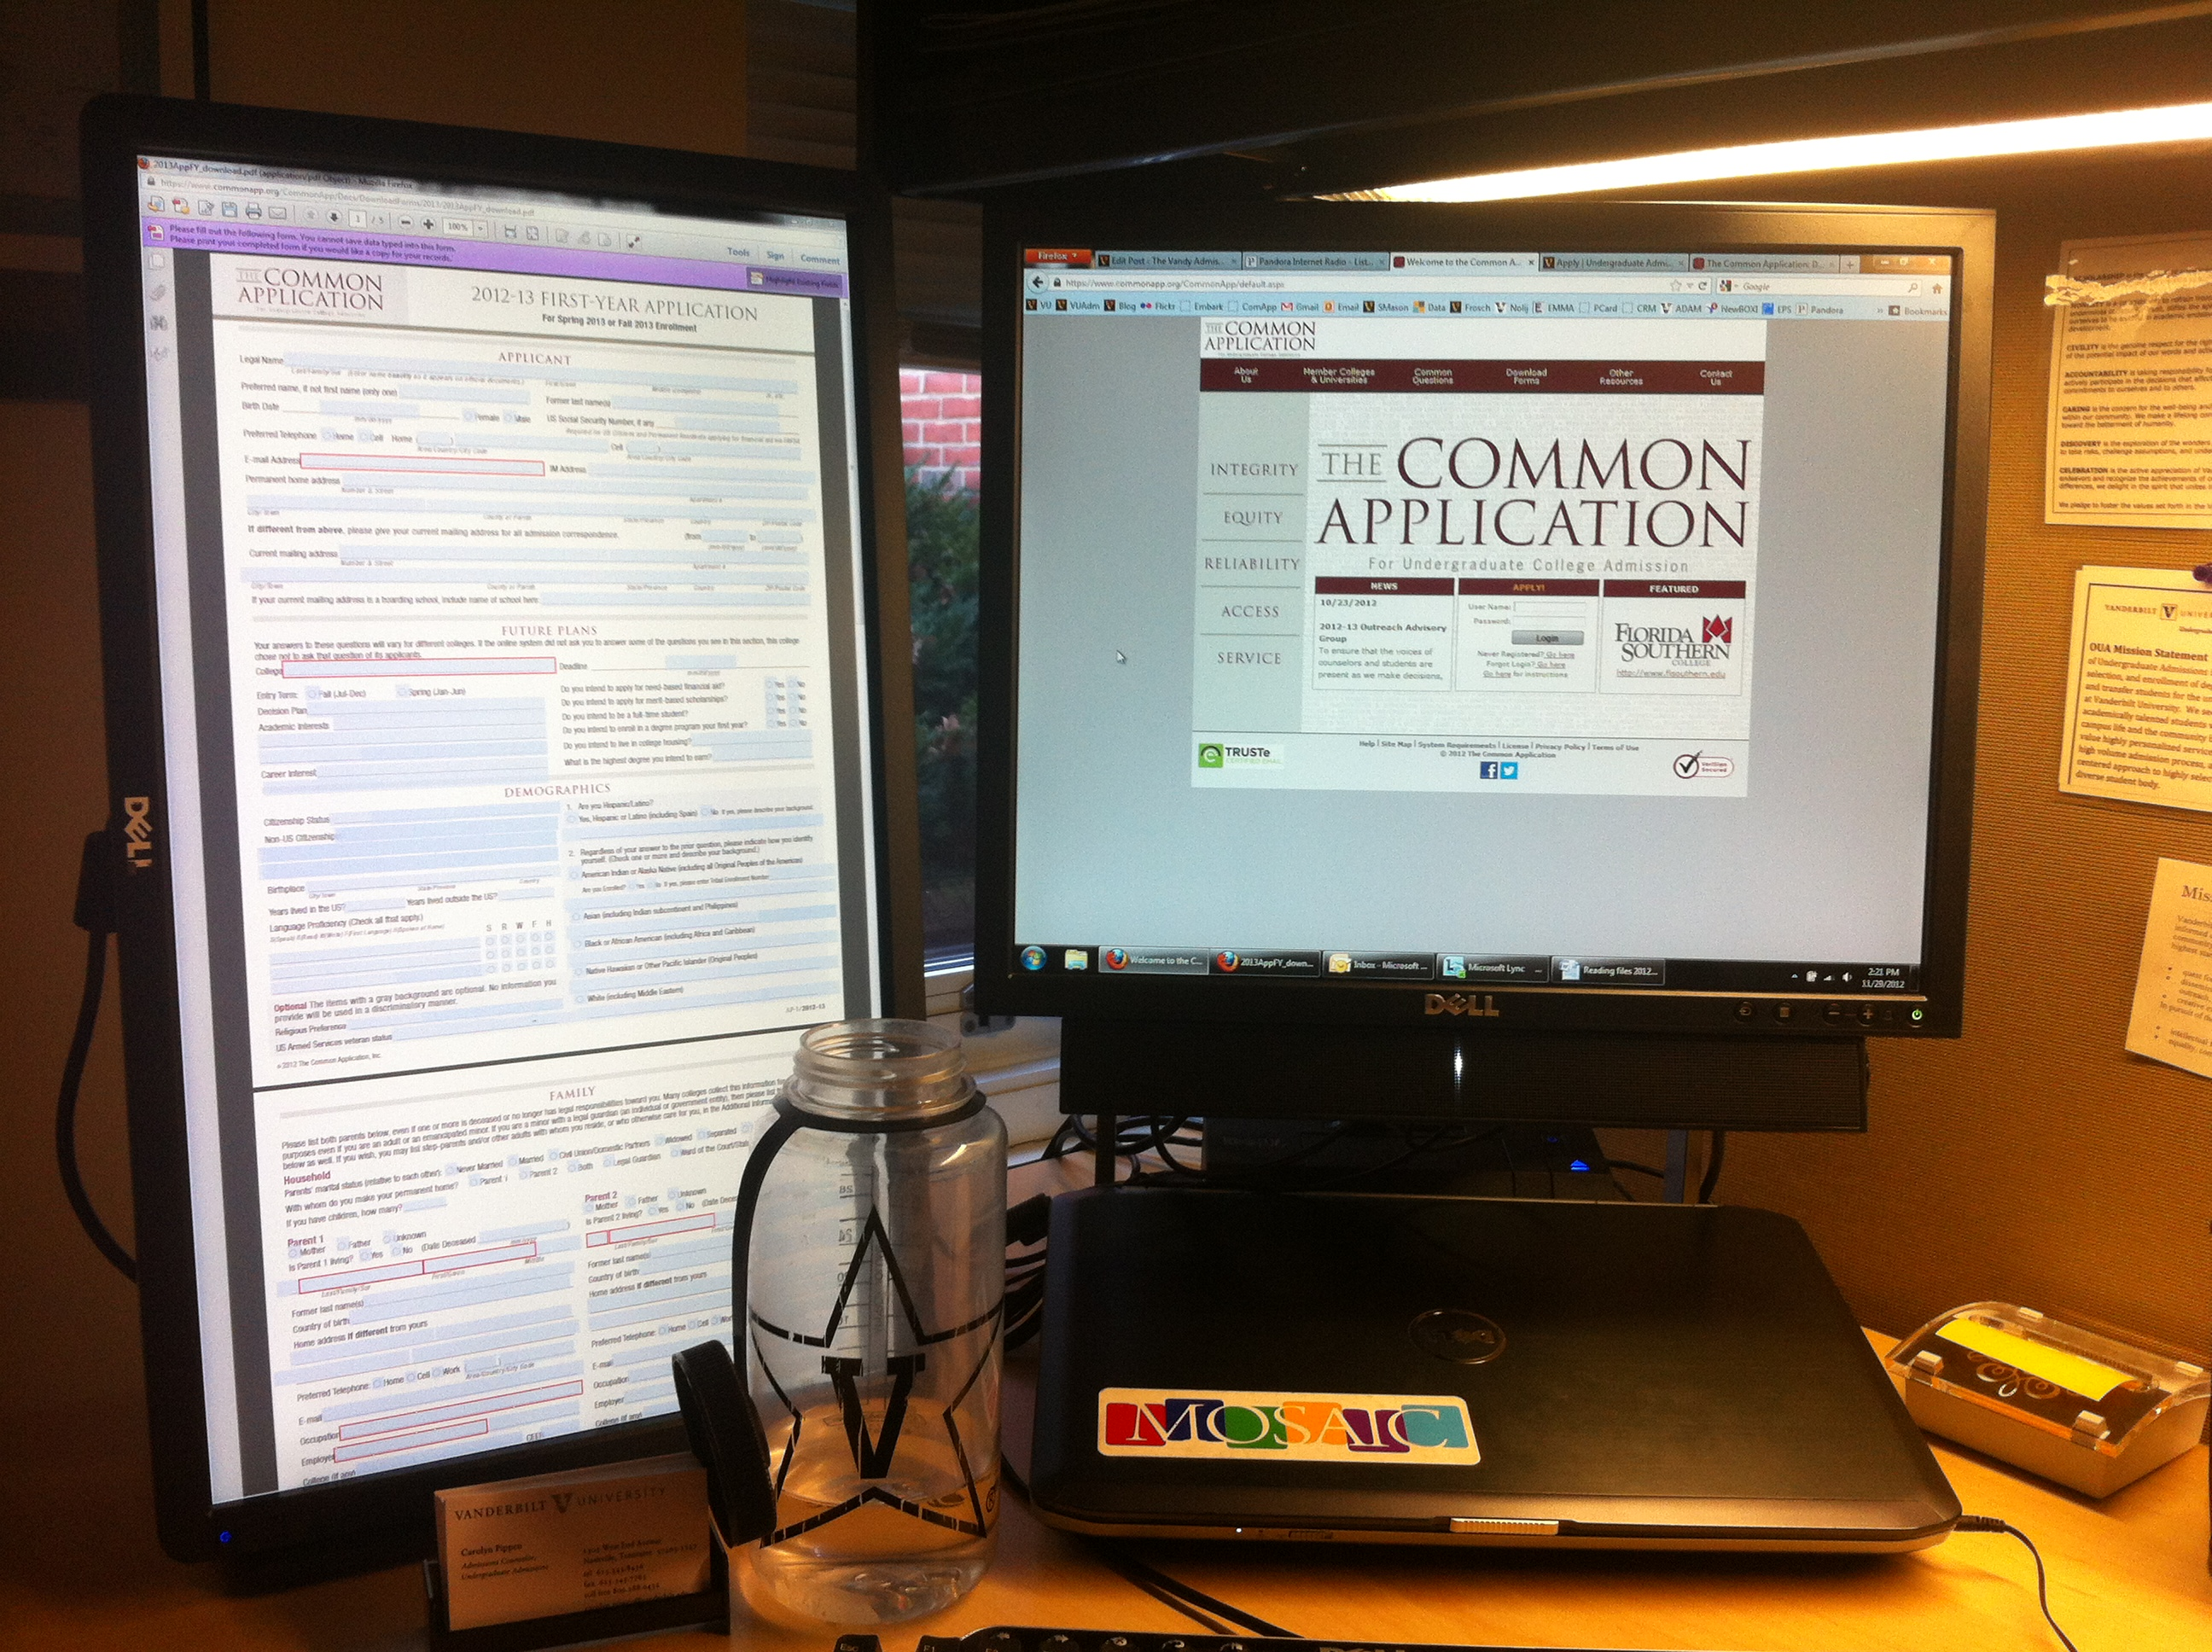 common application essay questions fall 2013